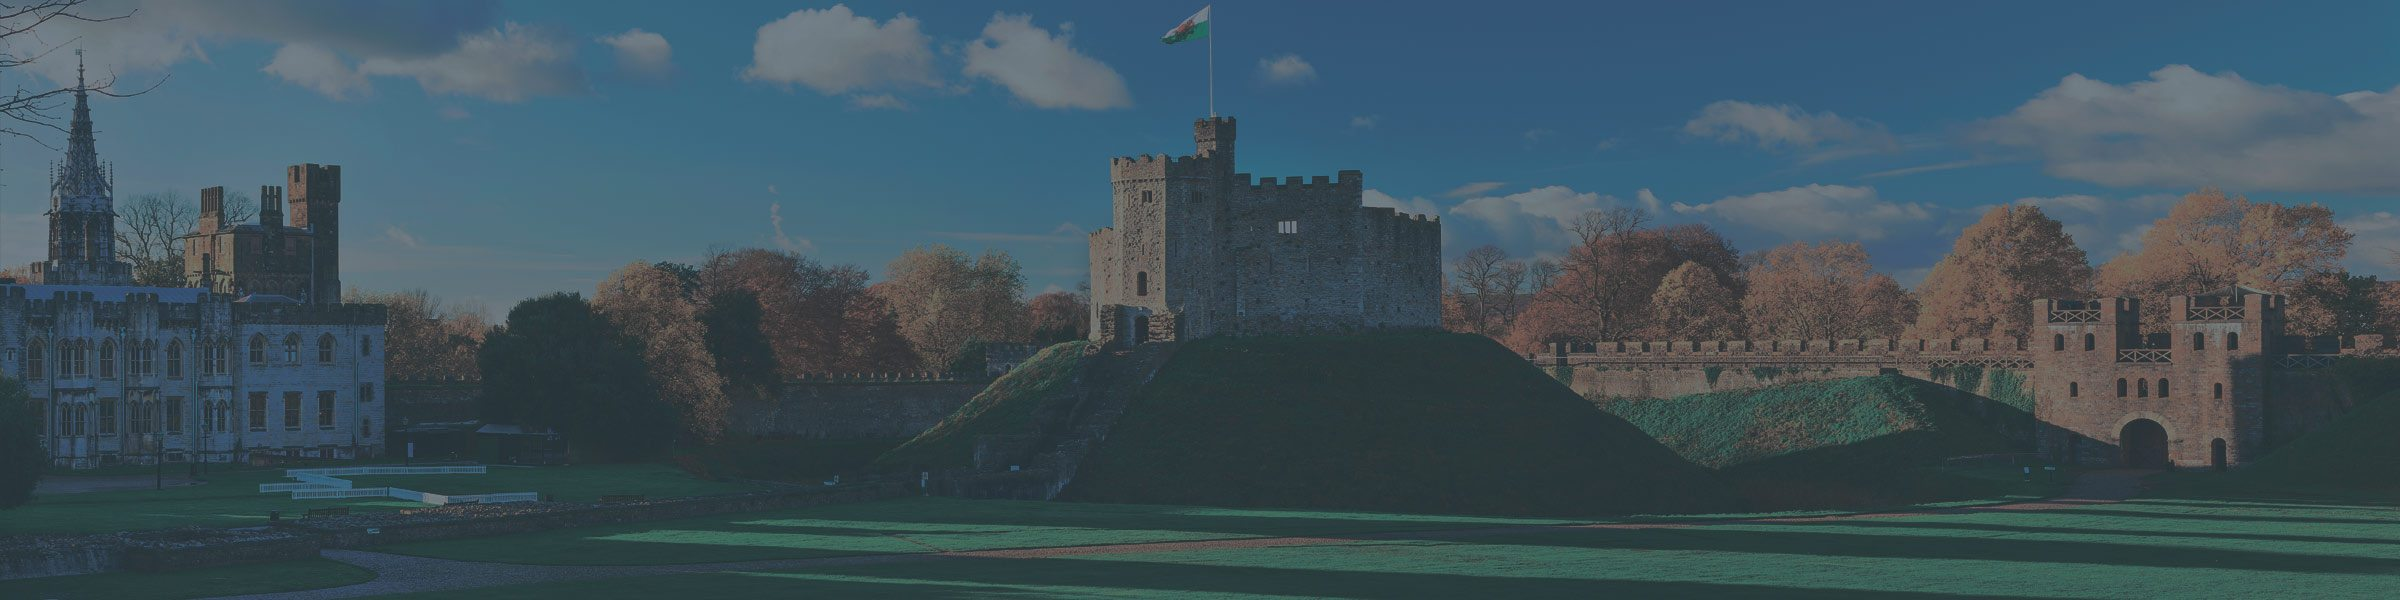 Property to Buy in Cardiff